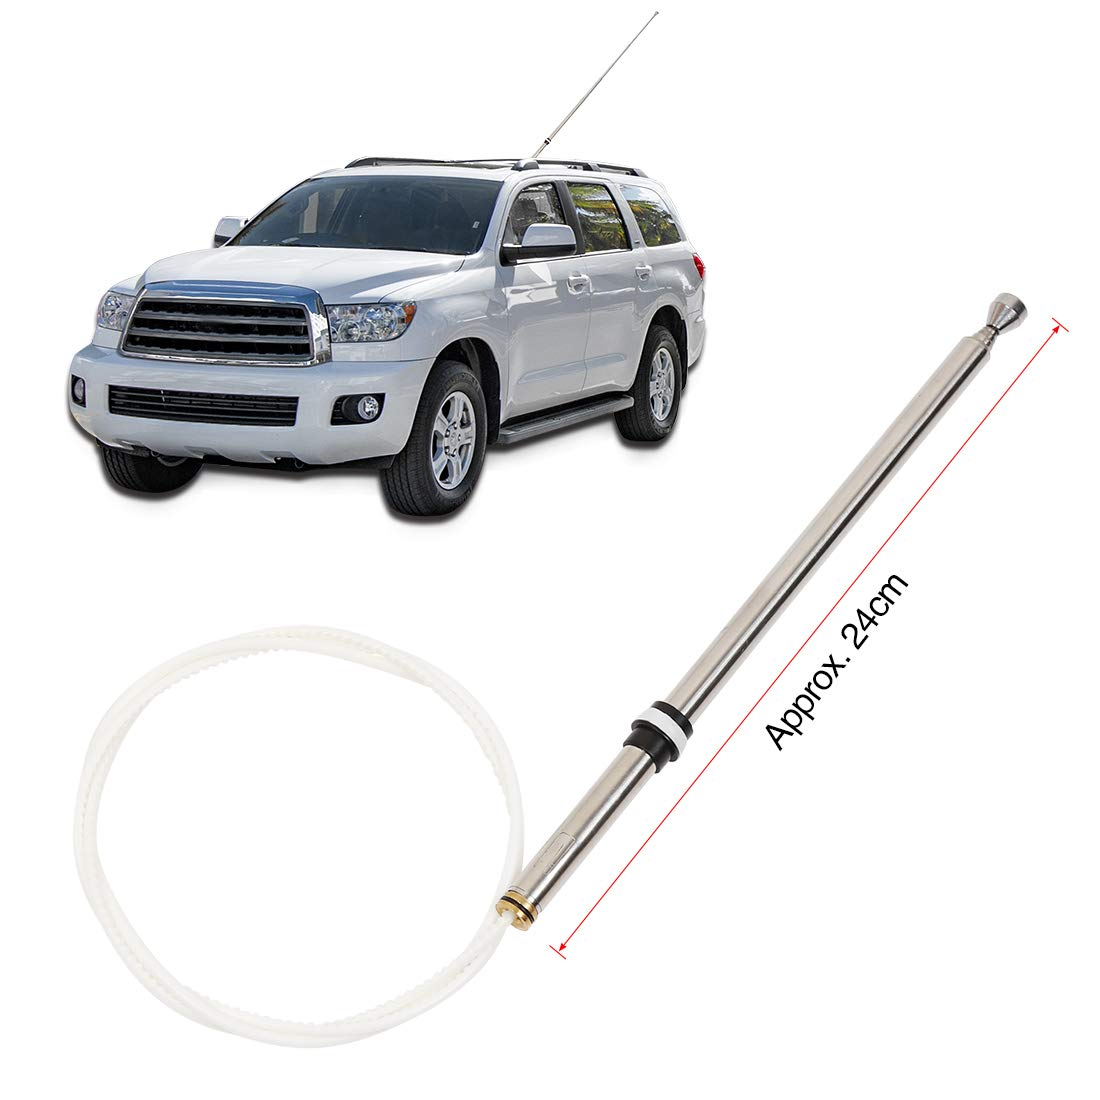 X AUTOHAUX Car AM FM Radio Antenna Mast 86337-50141 for Toyota Lexus LS400 GS300